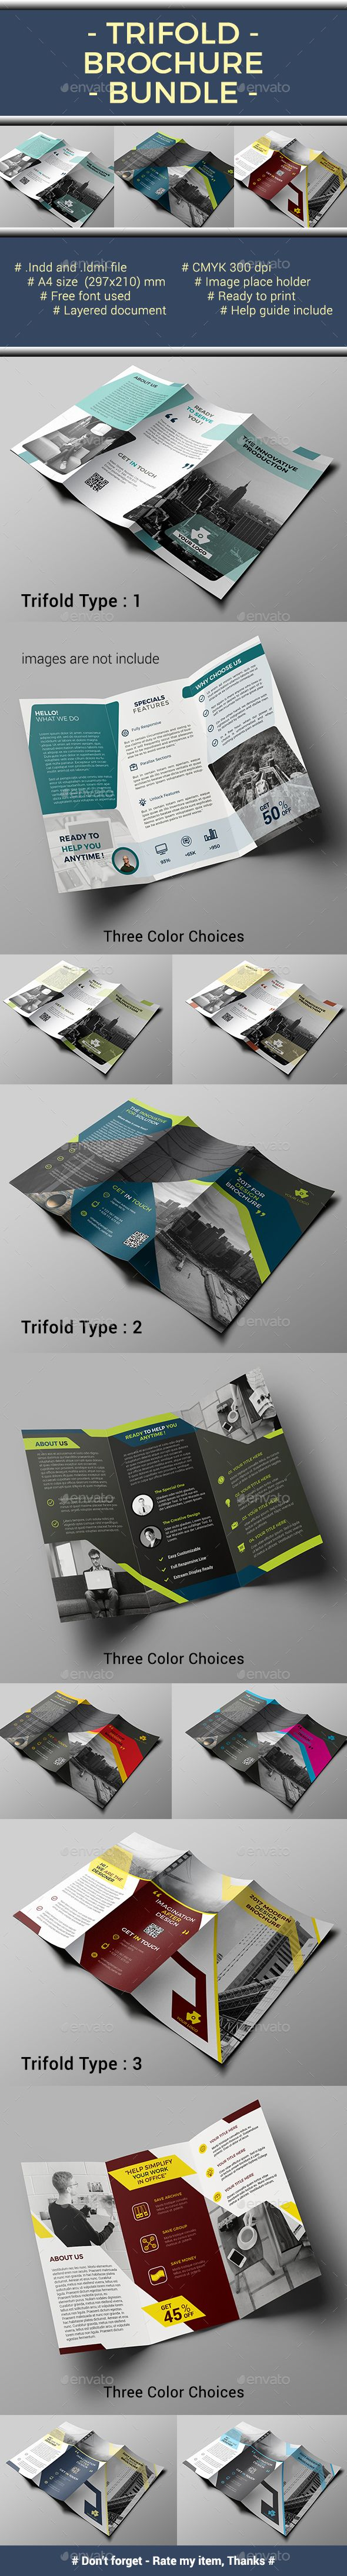 Trifold Bundle | Pinterest | Folletos